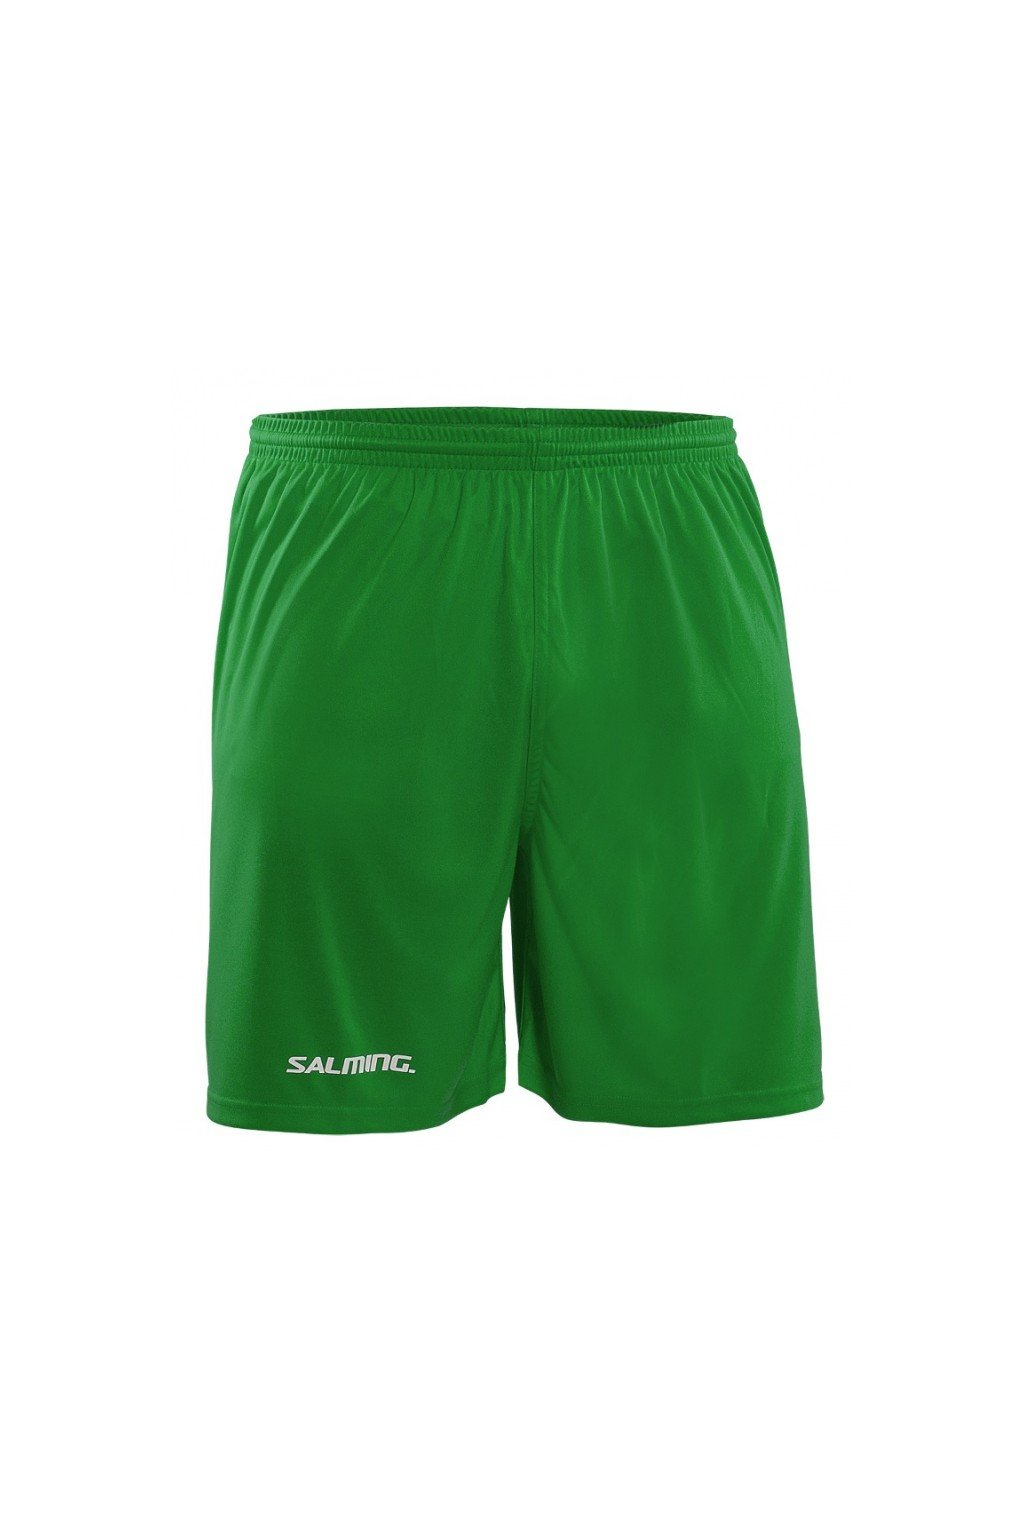 salming core shorts jr green 164